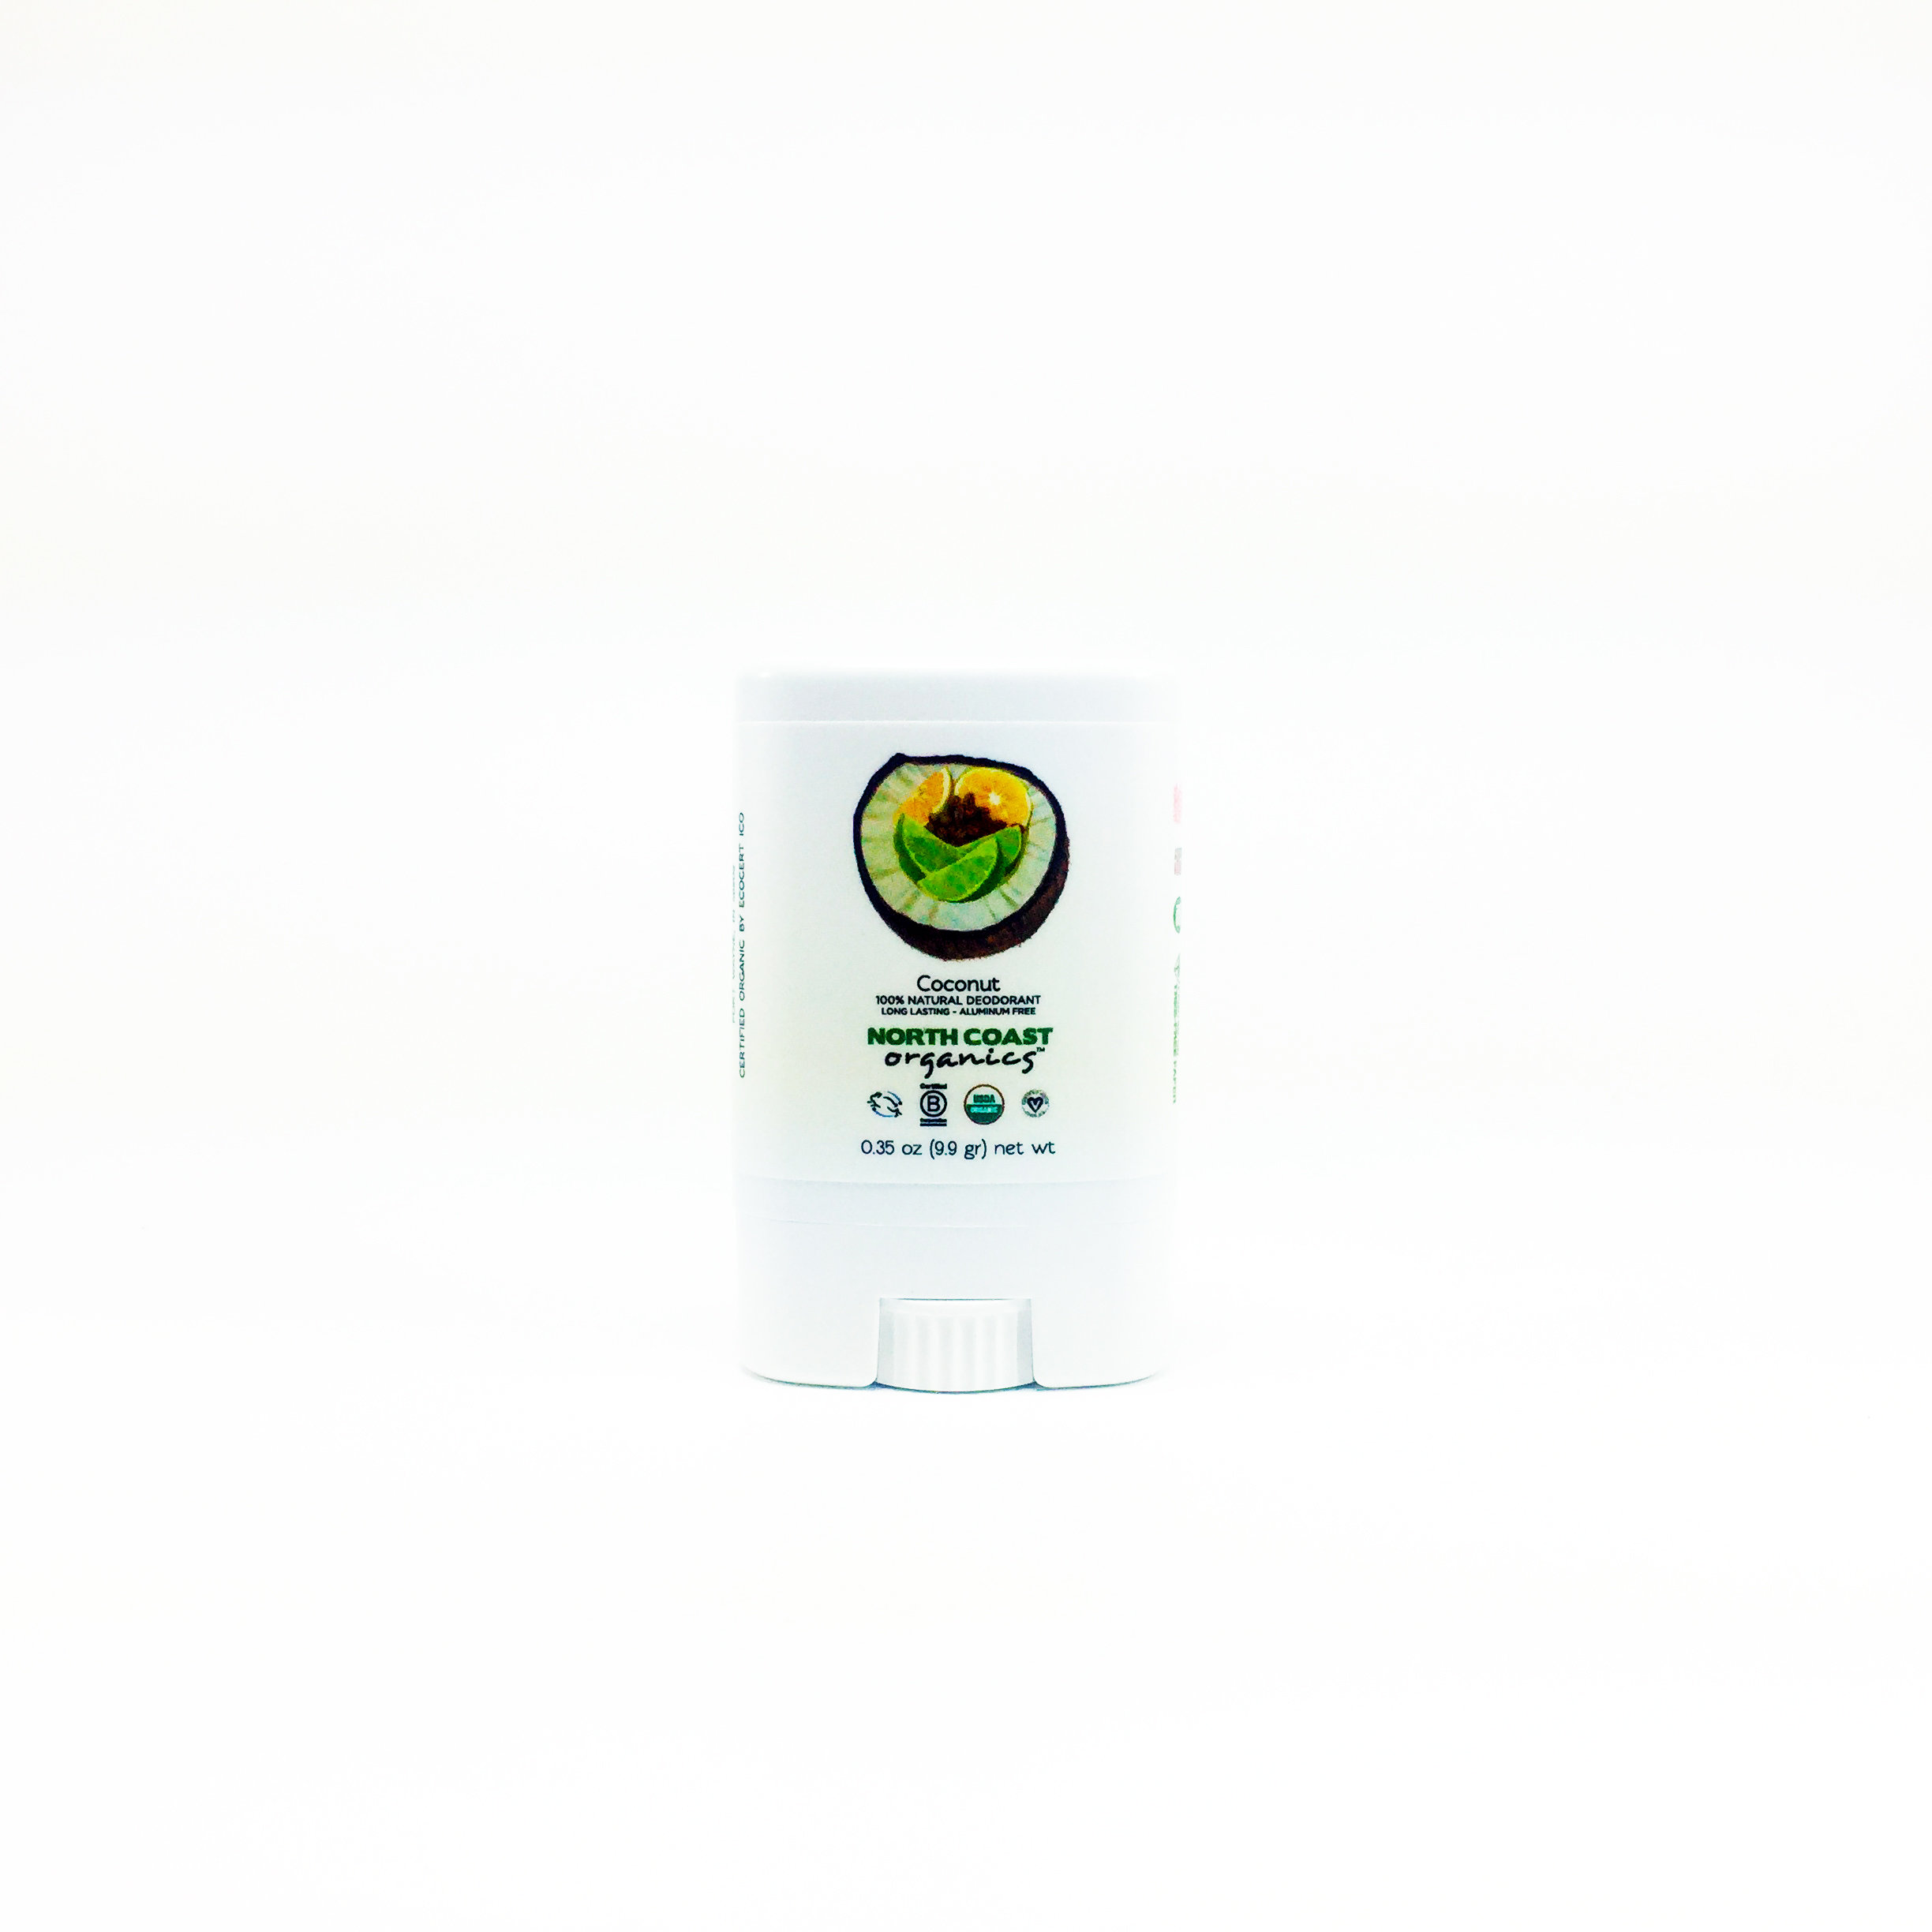 Coconut - Travel Size Organic Deodorant 0.35 oz 2008